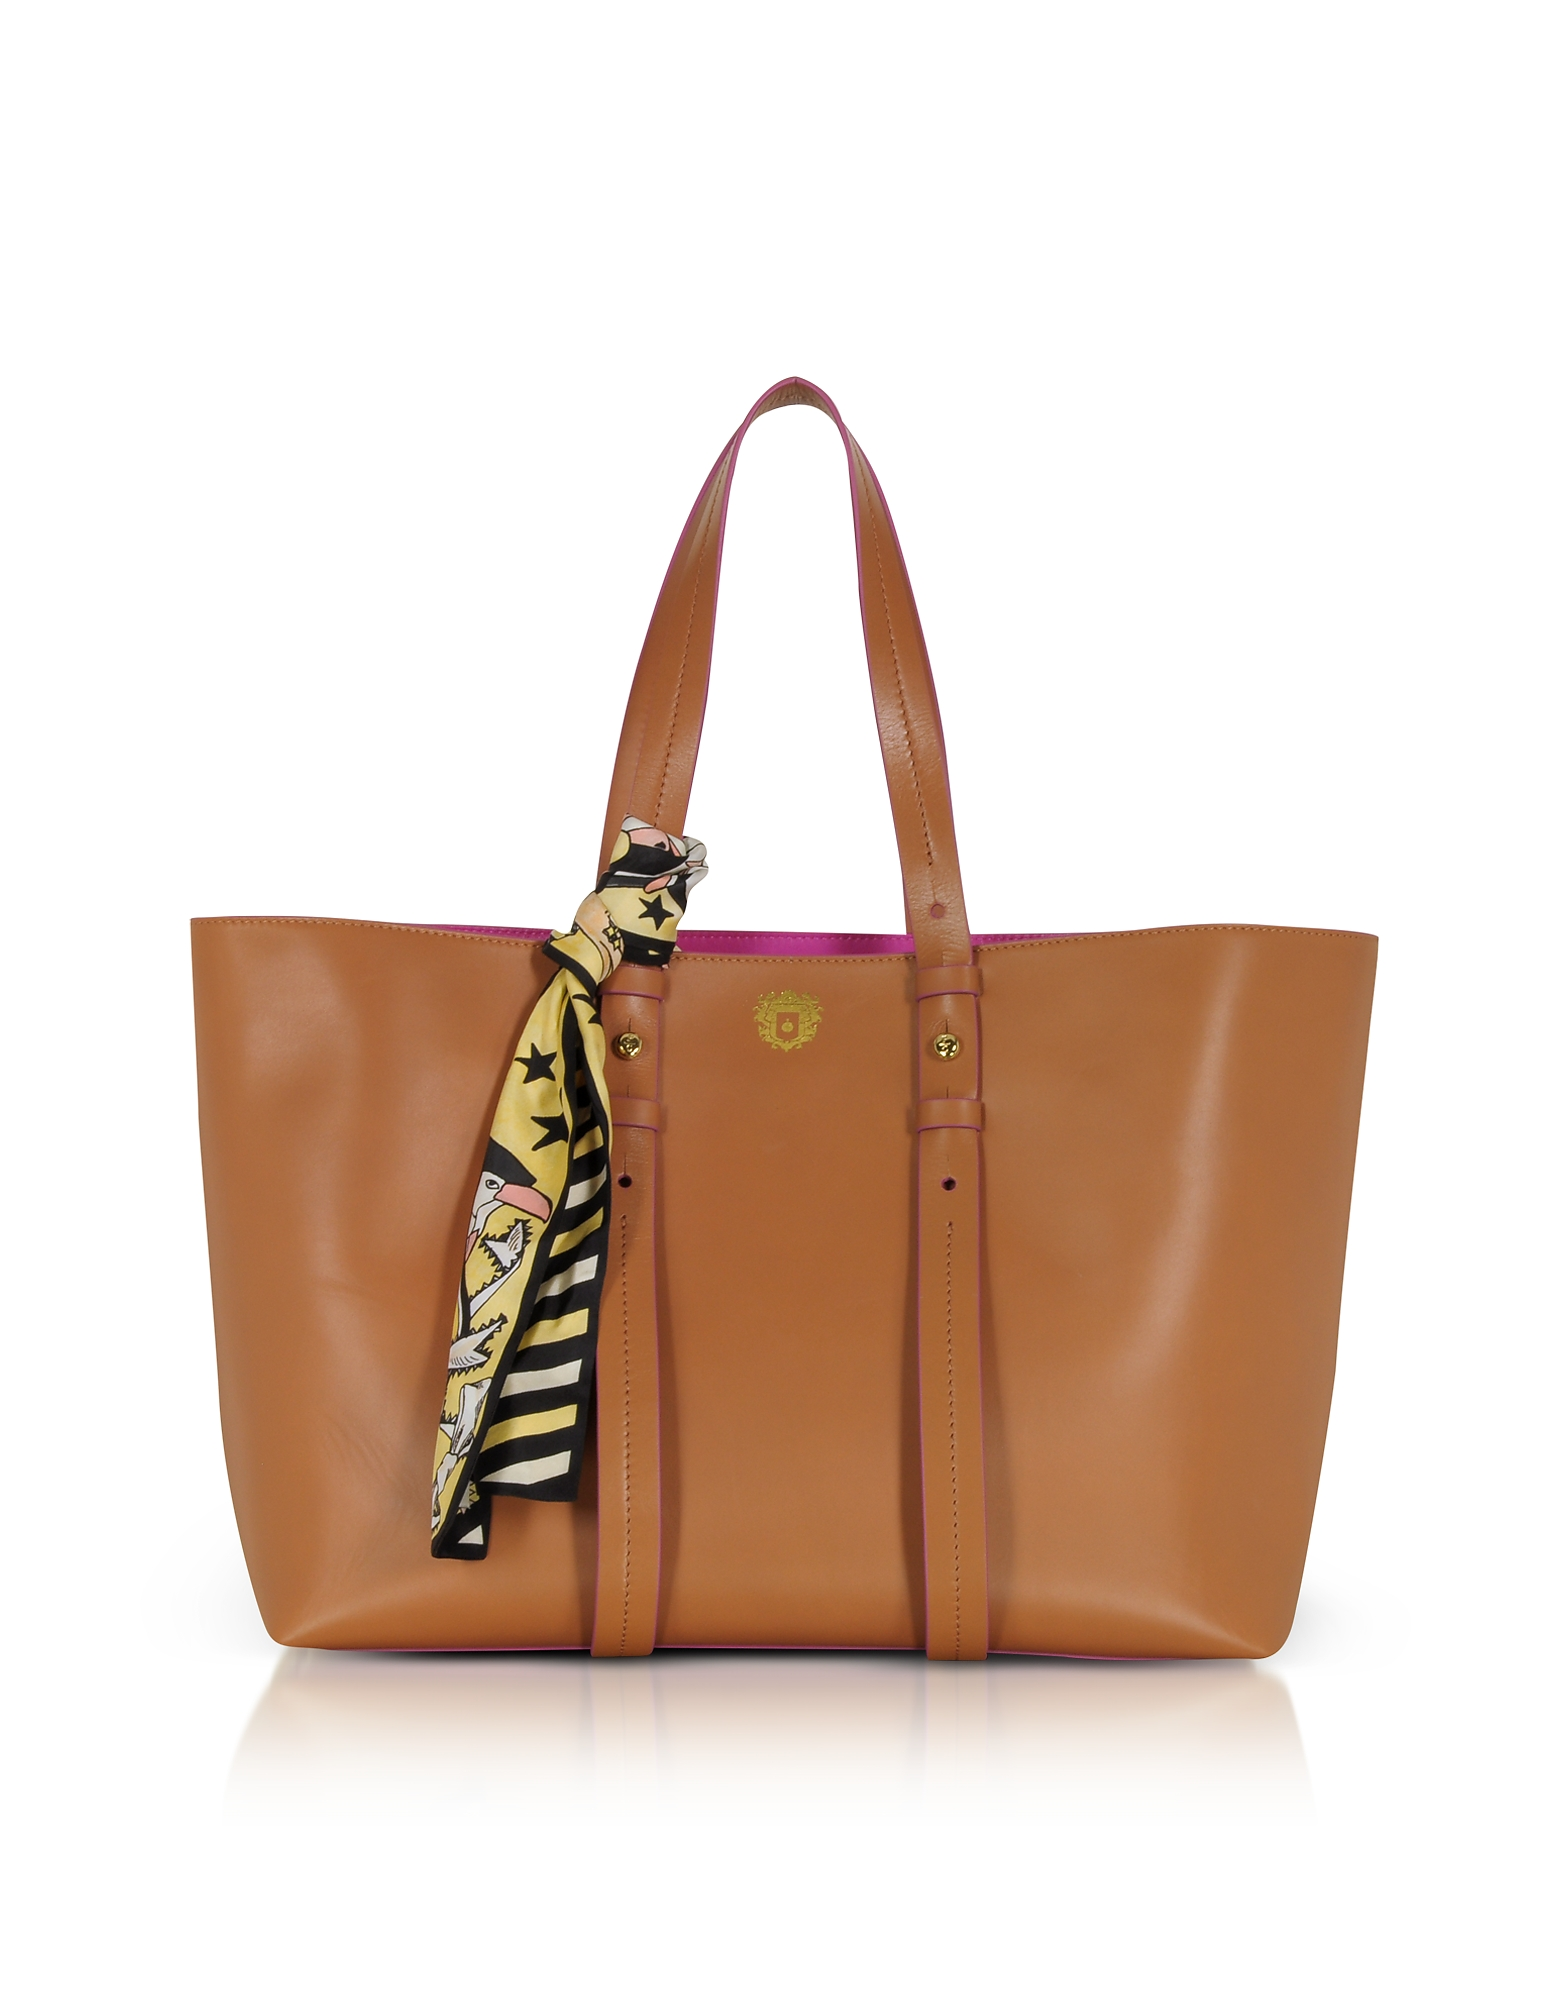 Image of Paula Cademartori Designer Handbags, Helen Large Pecan Brown Tote Bag